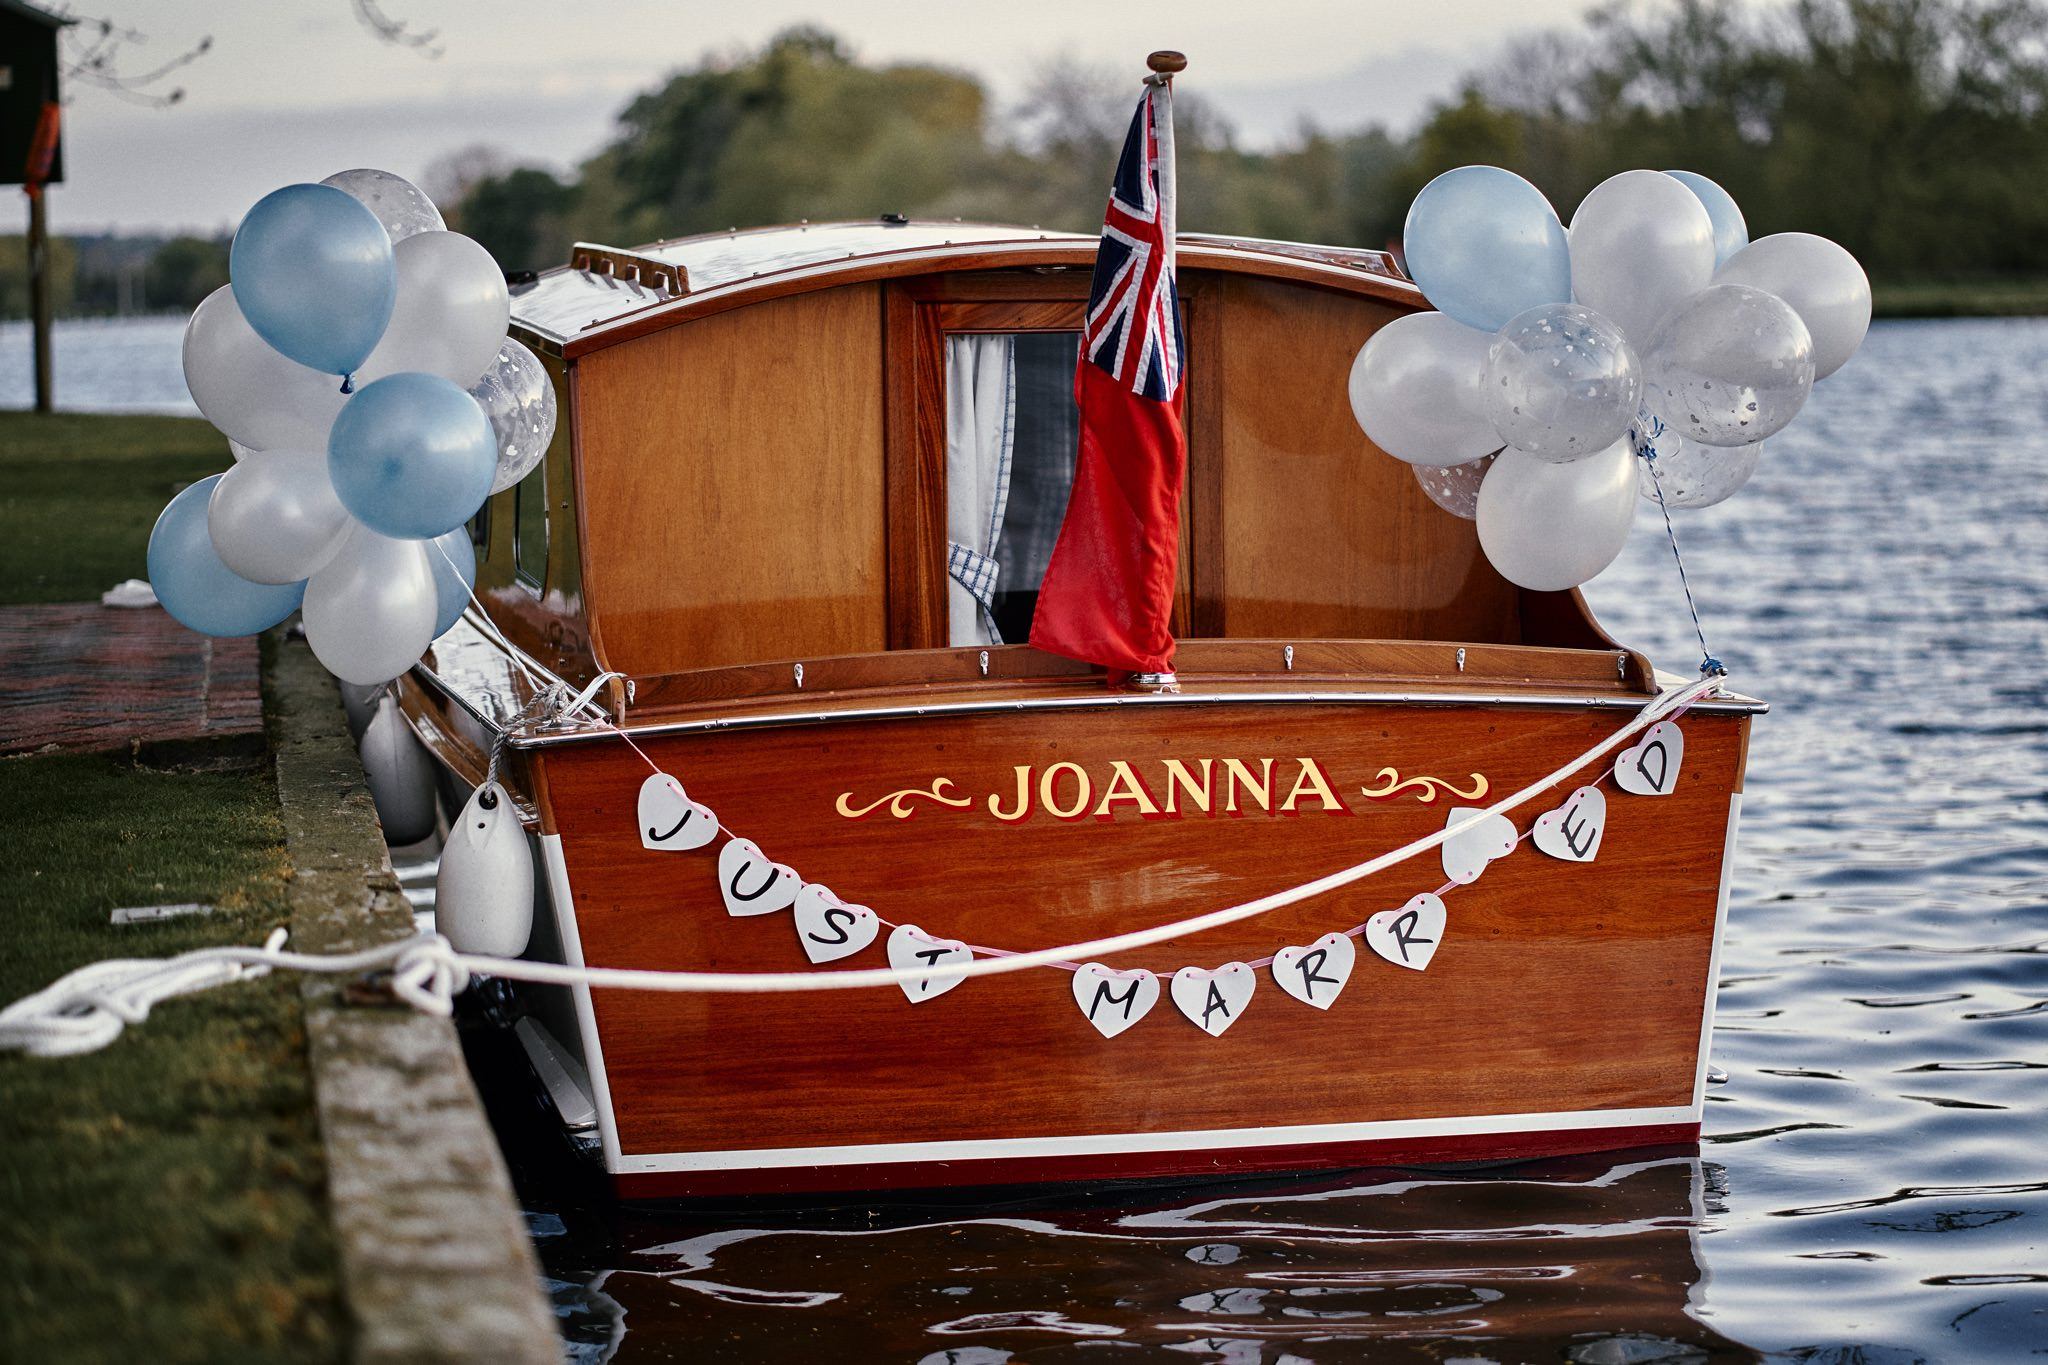 Wedding boat on the Thames